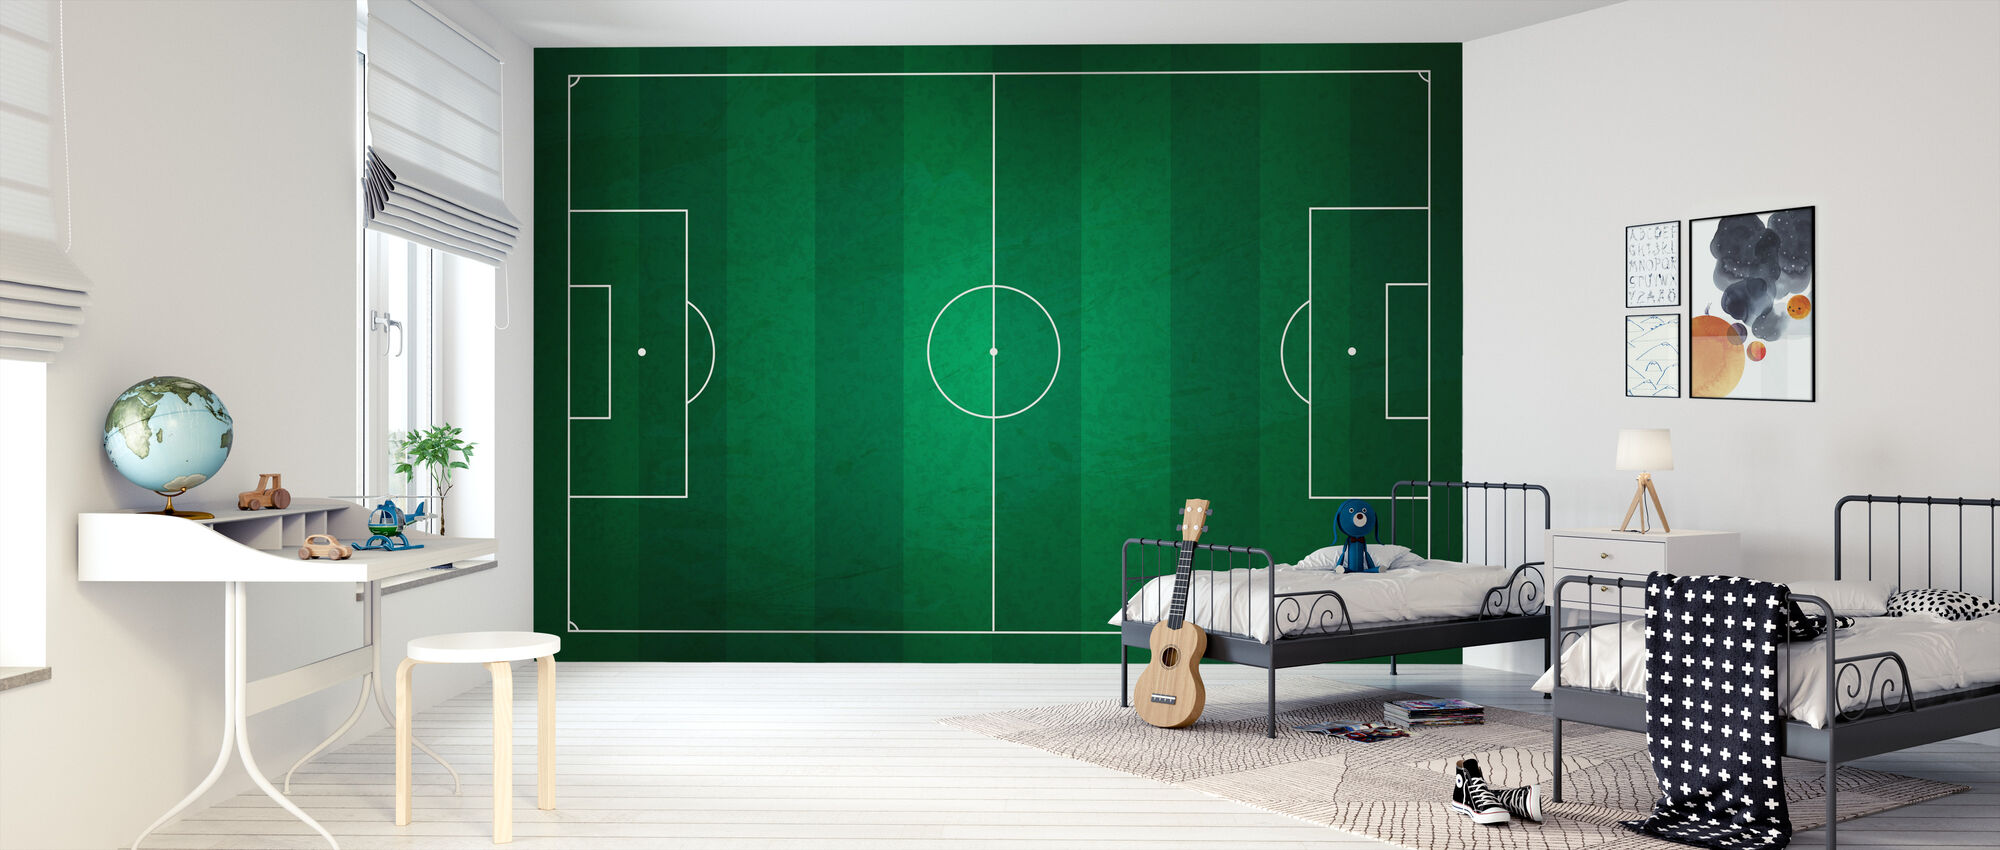 Soccer Field from Above - Wallpaper - Kids Room